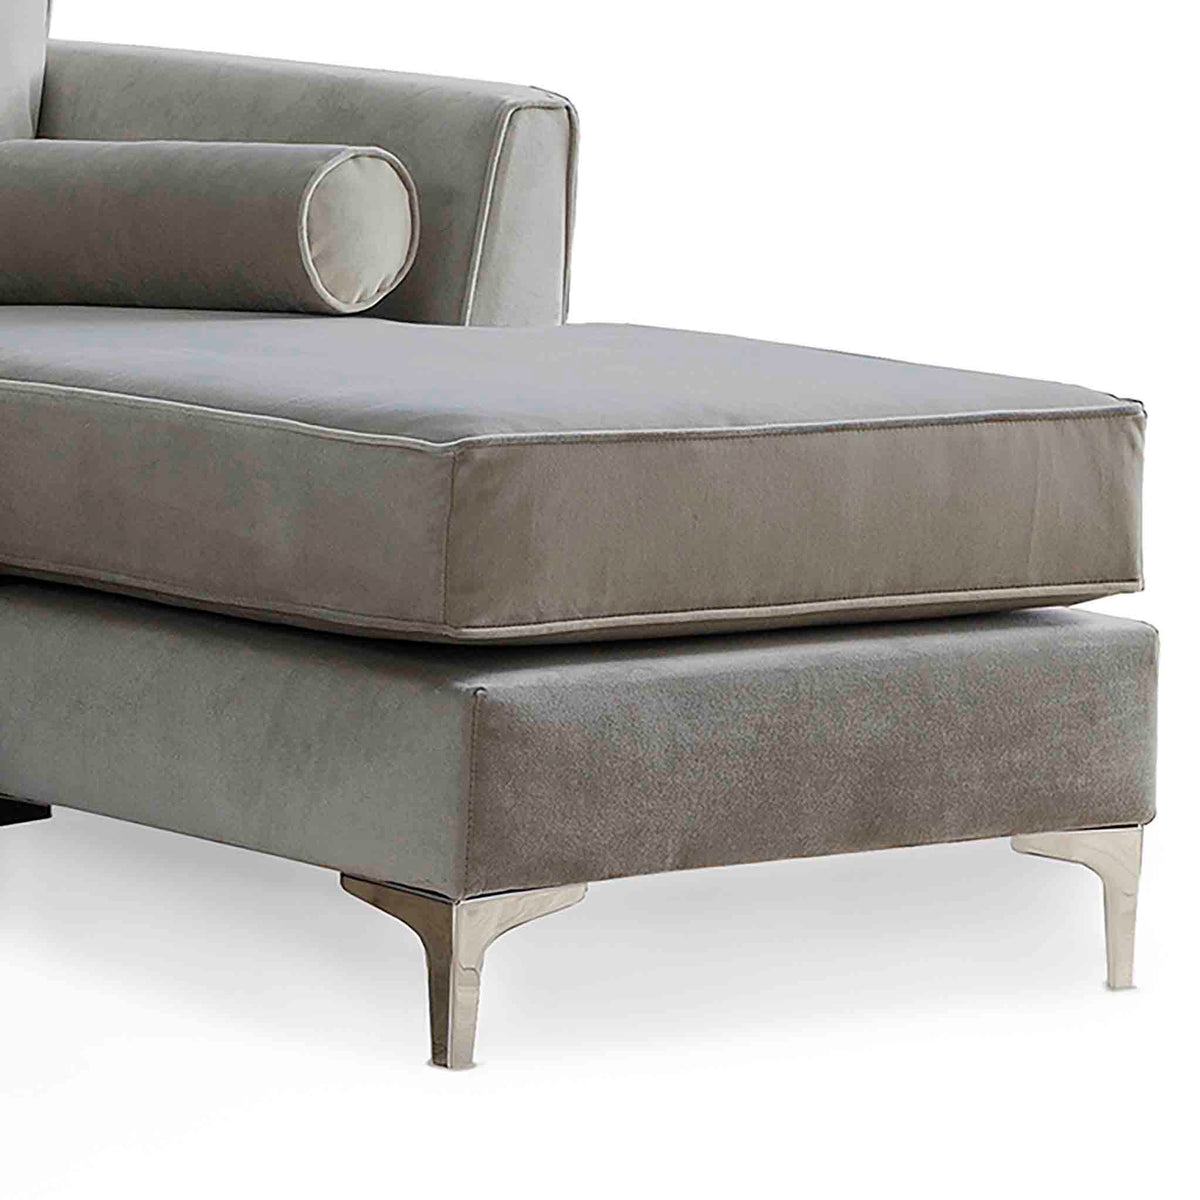 Ikon Reversible Grey Chaise Corner Sofa - Close up of chaise section